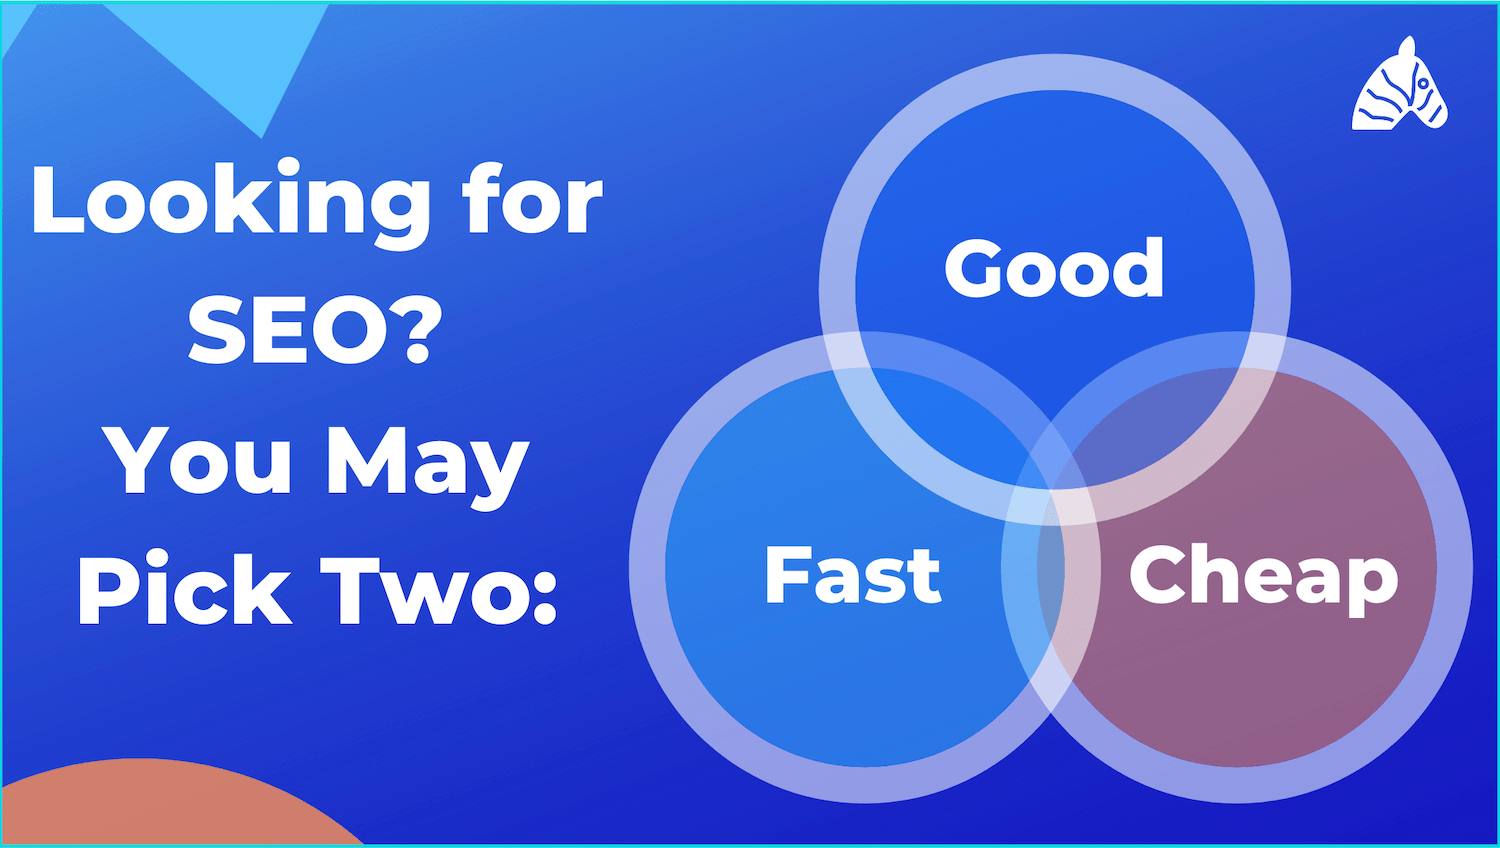 SEO services - fast, cheap or reliable